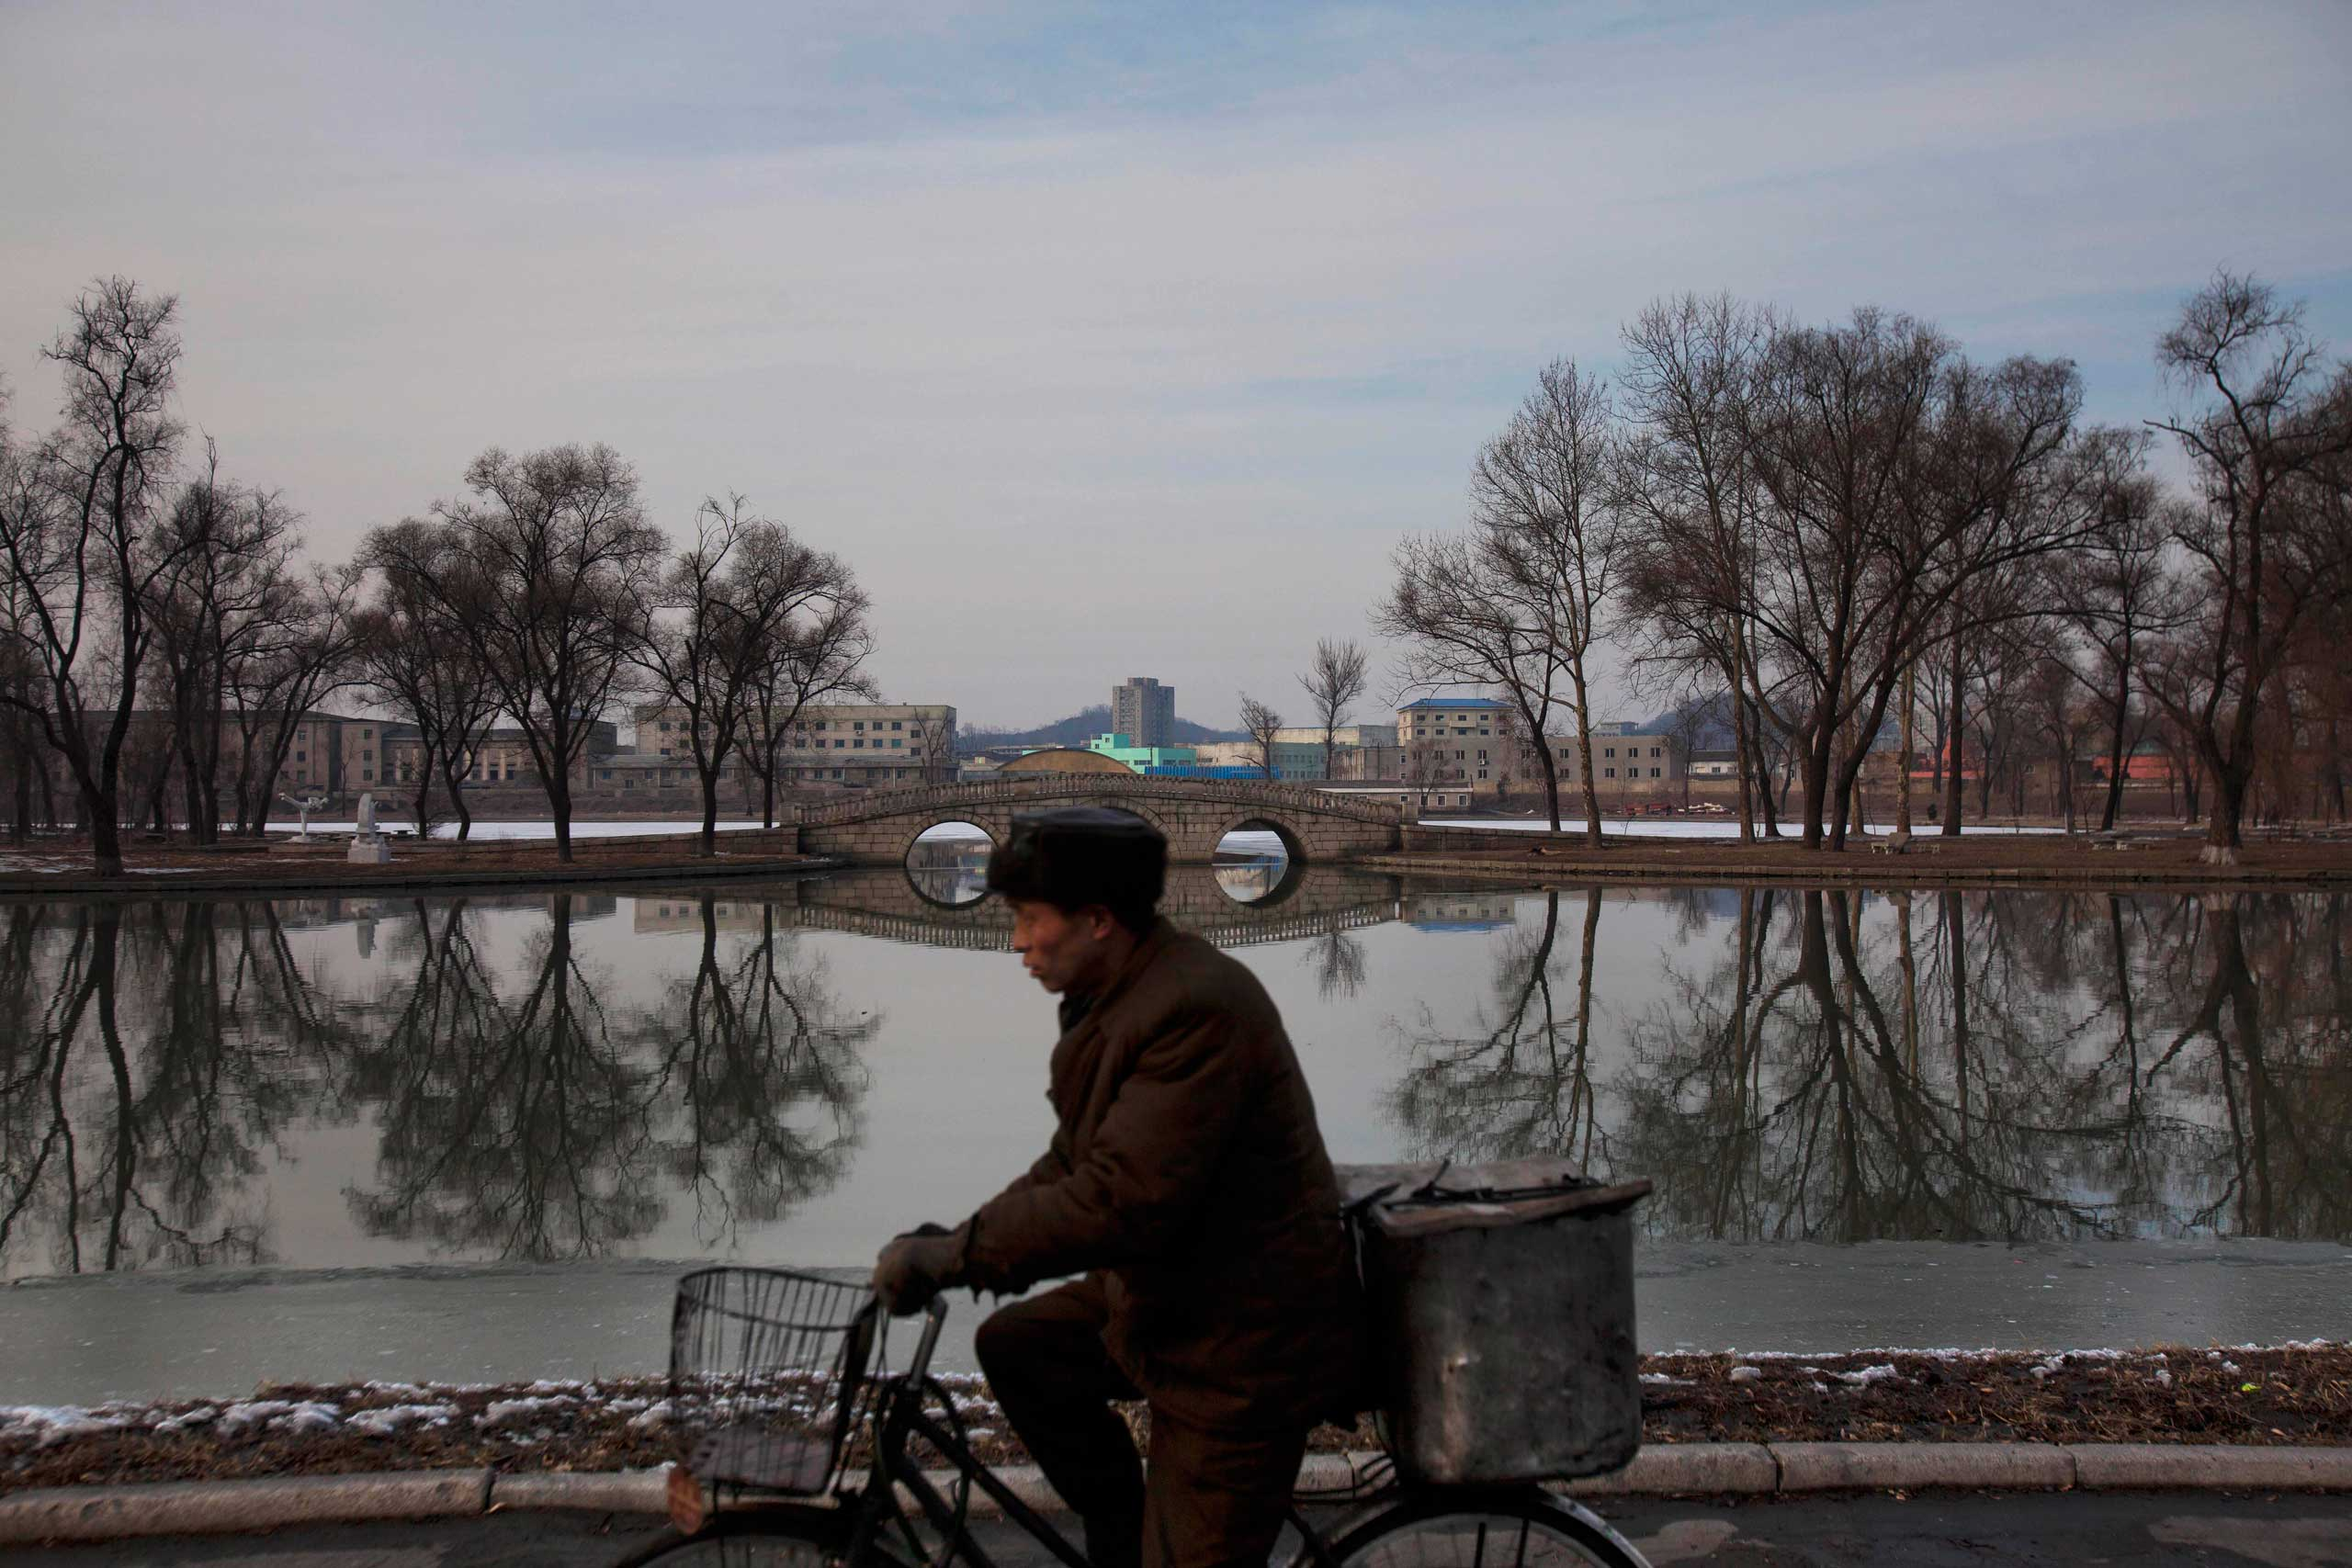 Feb. 12, 2012. A North Korean man rides a bike along the banks of the Pothong River in Pyongyang.